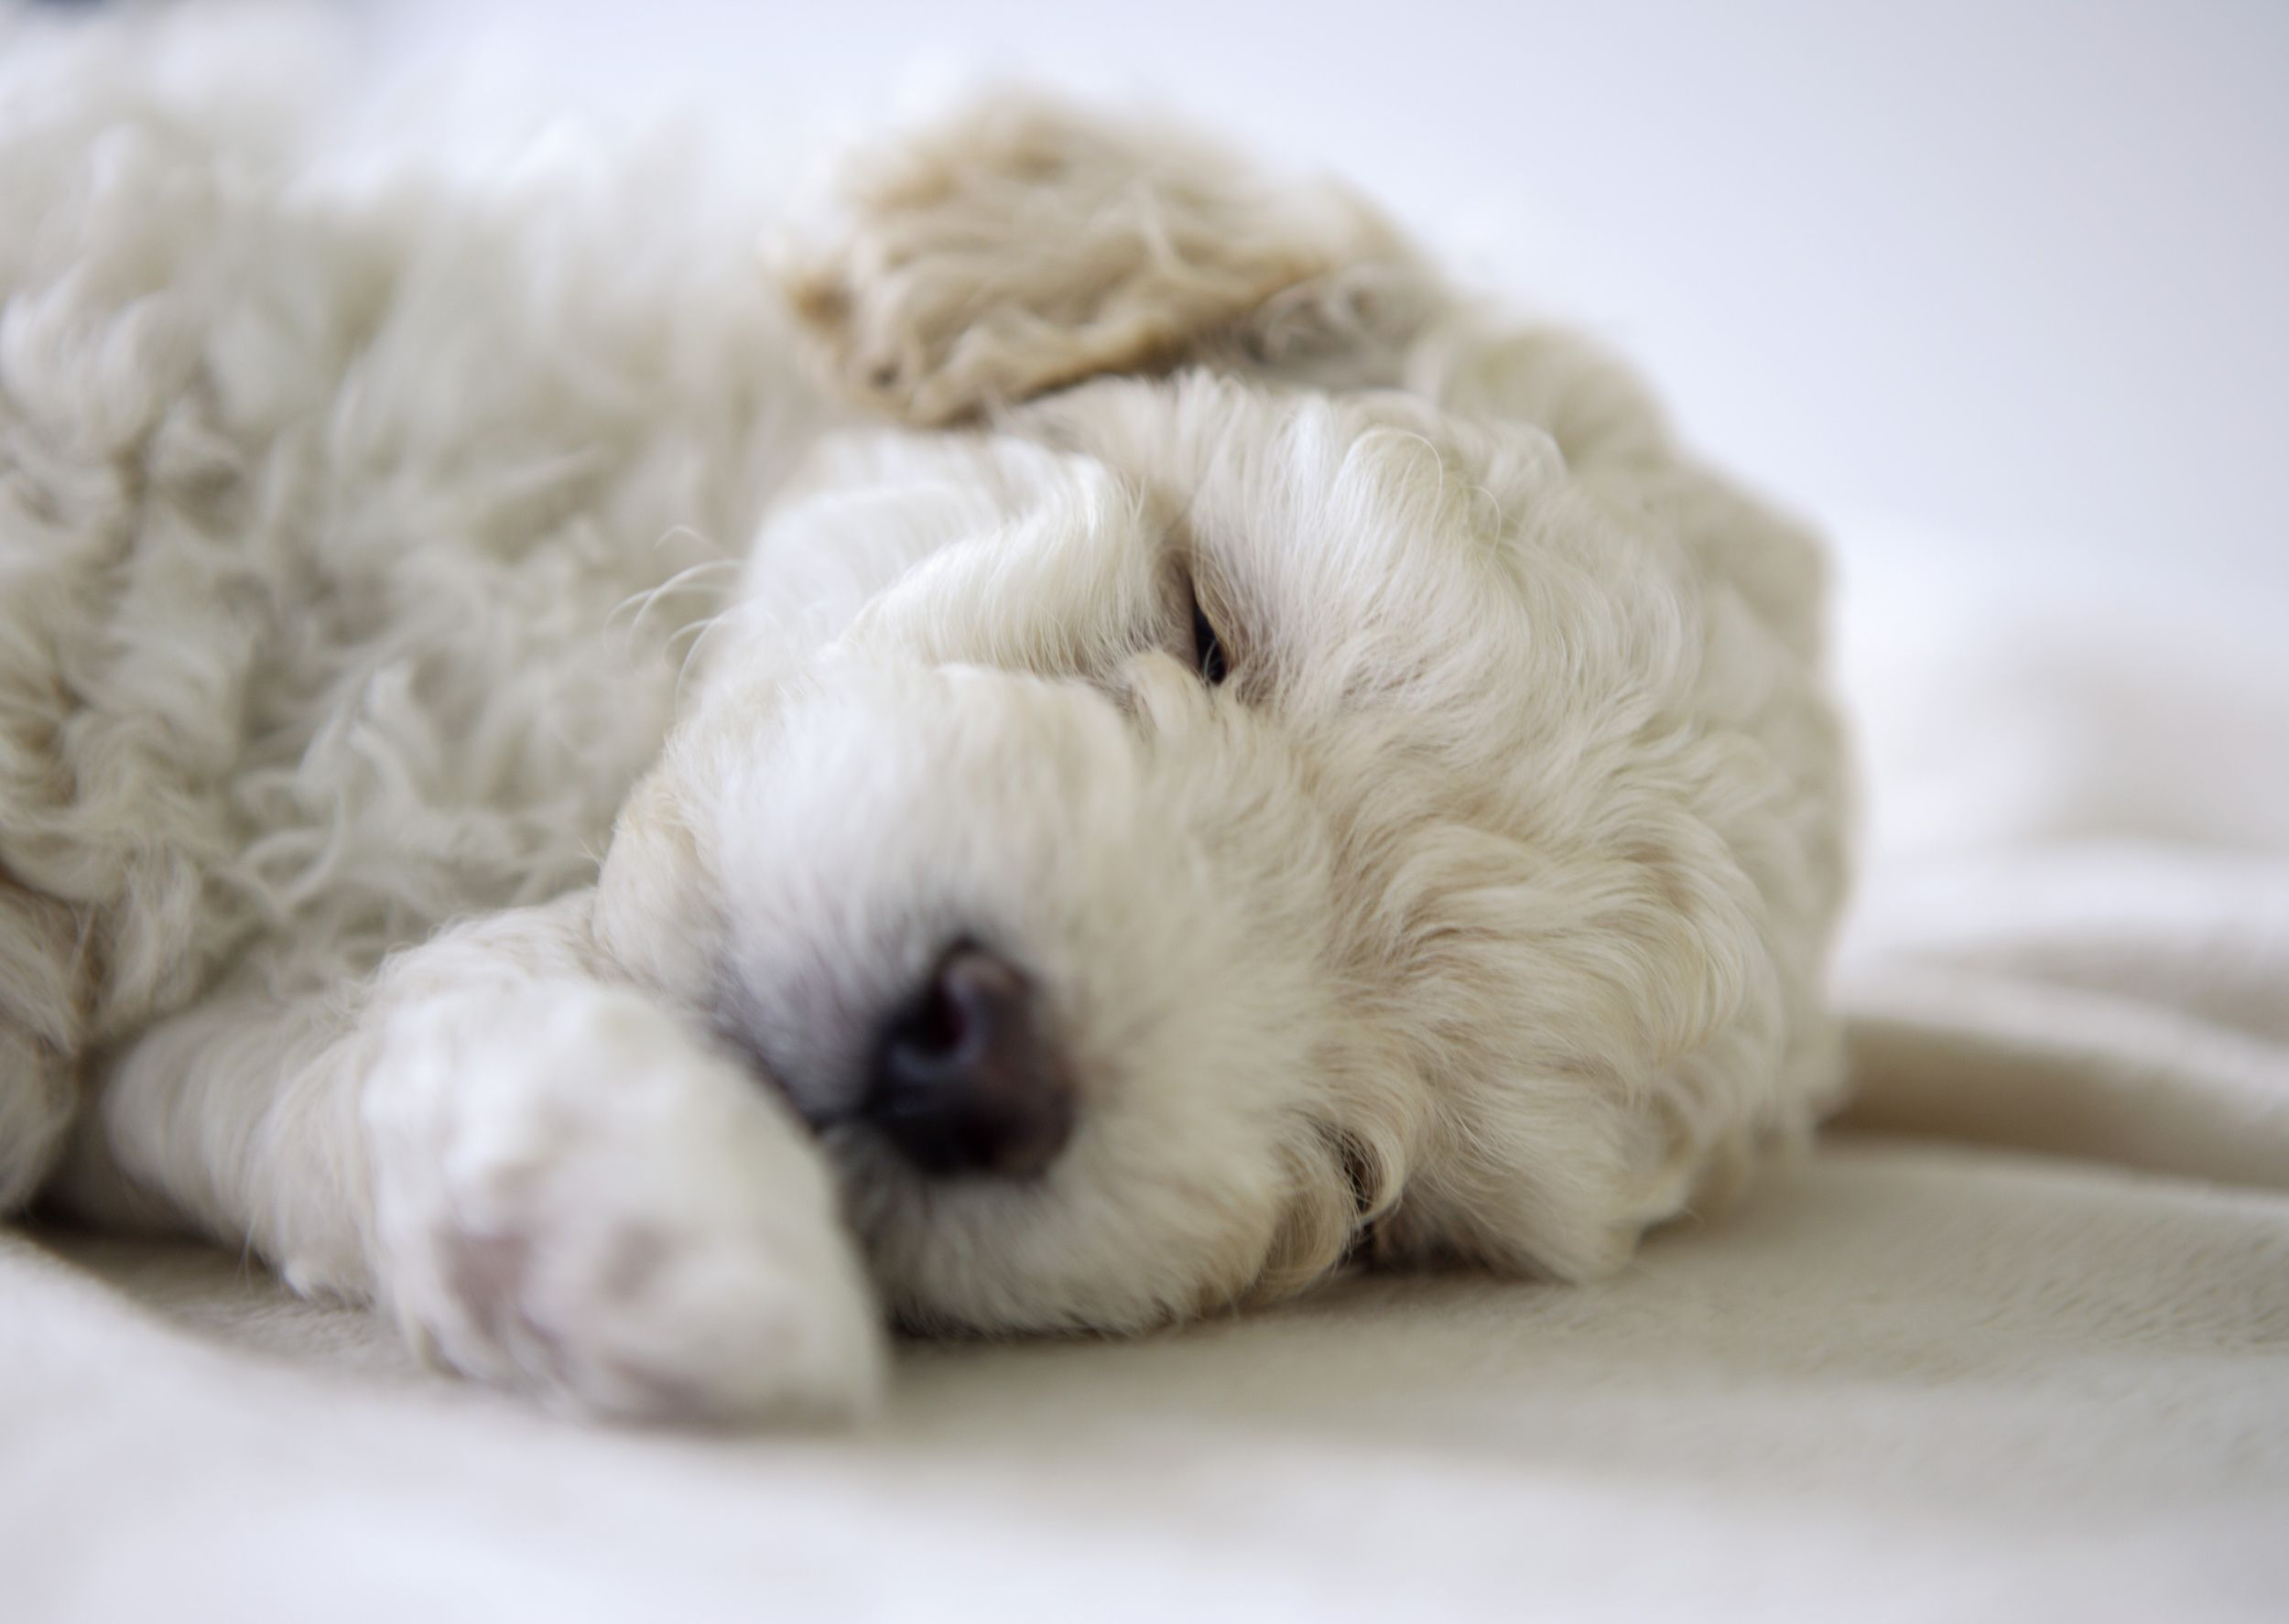 Sleeping Poodle puppy via @AOL_Lifestyle Read more: http://www.aol.com/article/lifestyle/2016/12/12/stress-can-cause-premature-gray-hair-in-dogs/21626368/?a_dgi=aolshare_pinterest#fullscreen